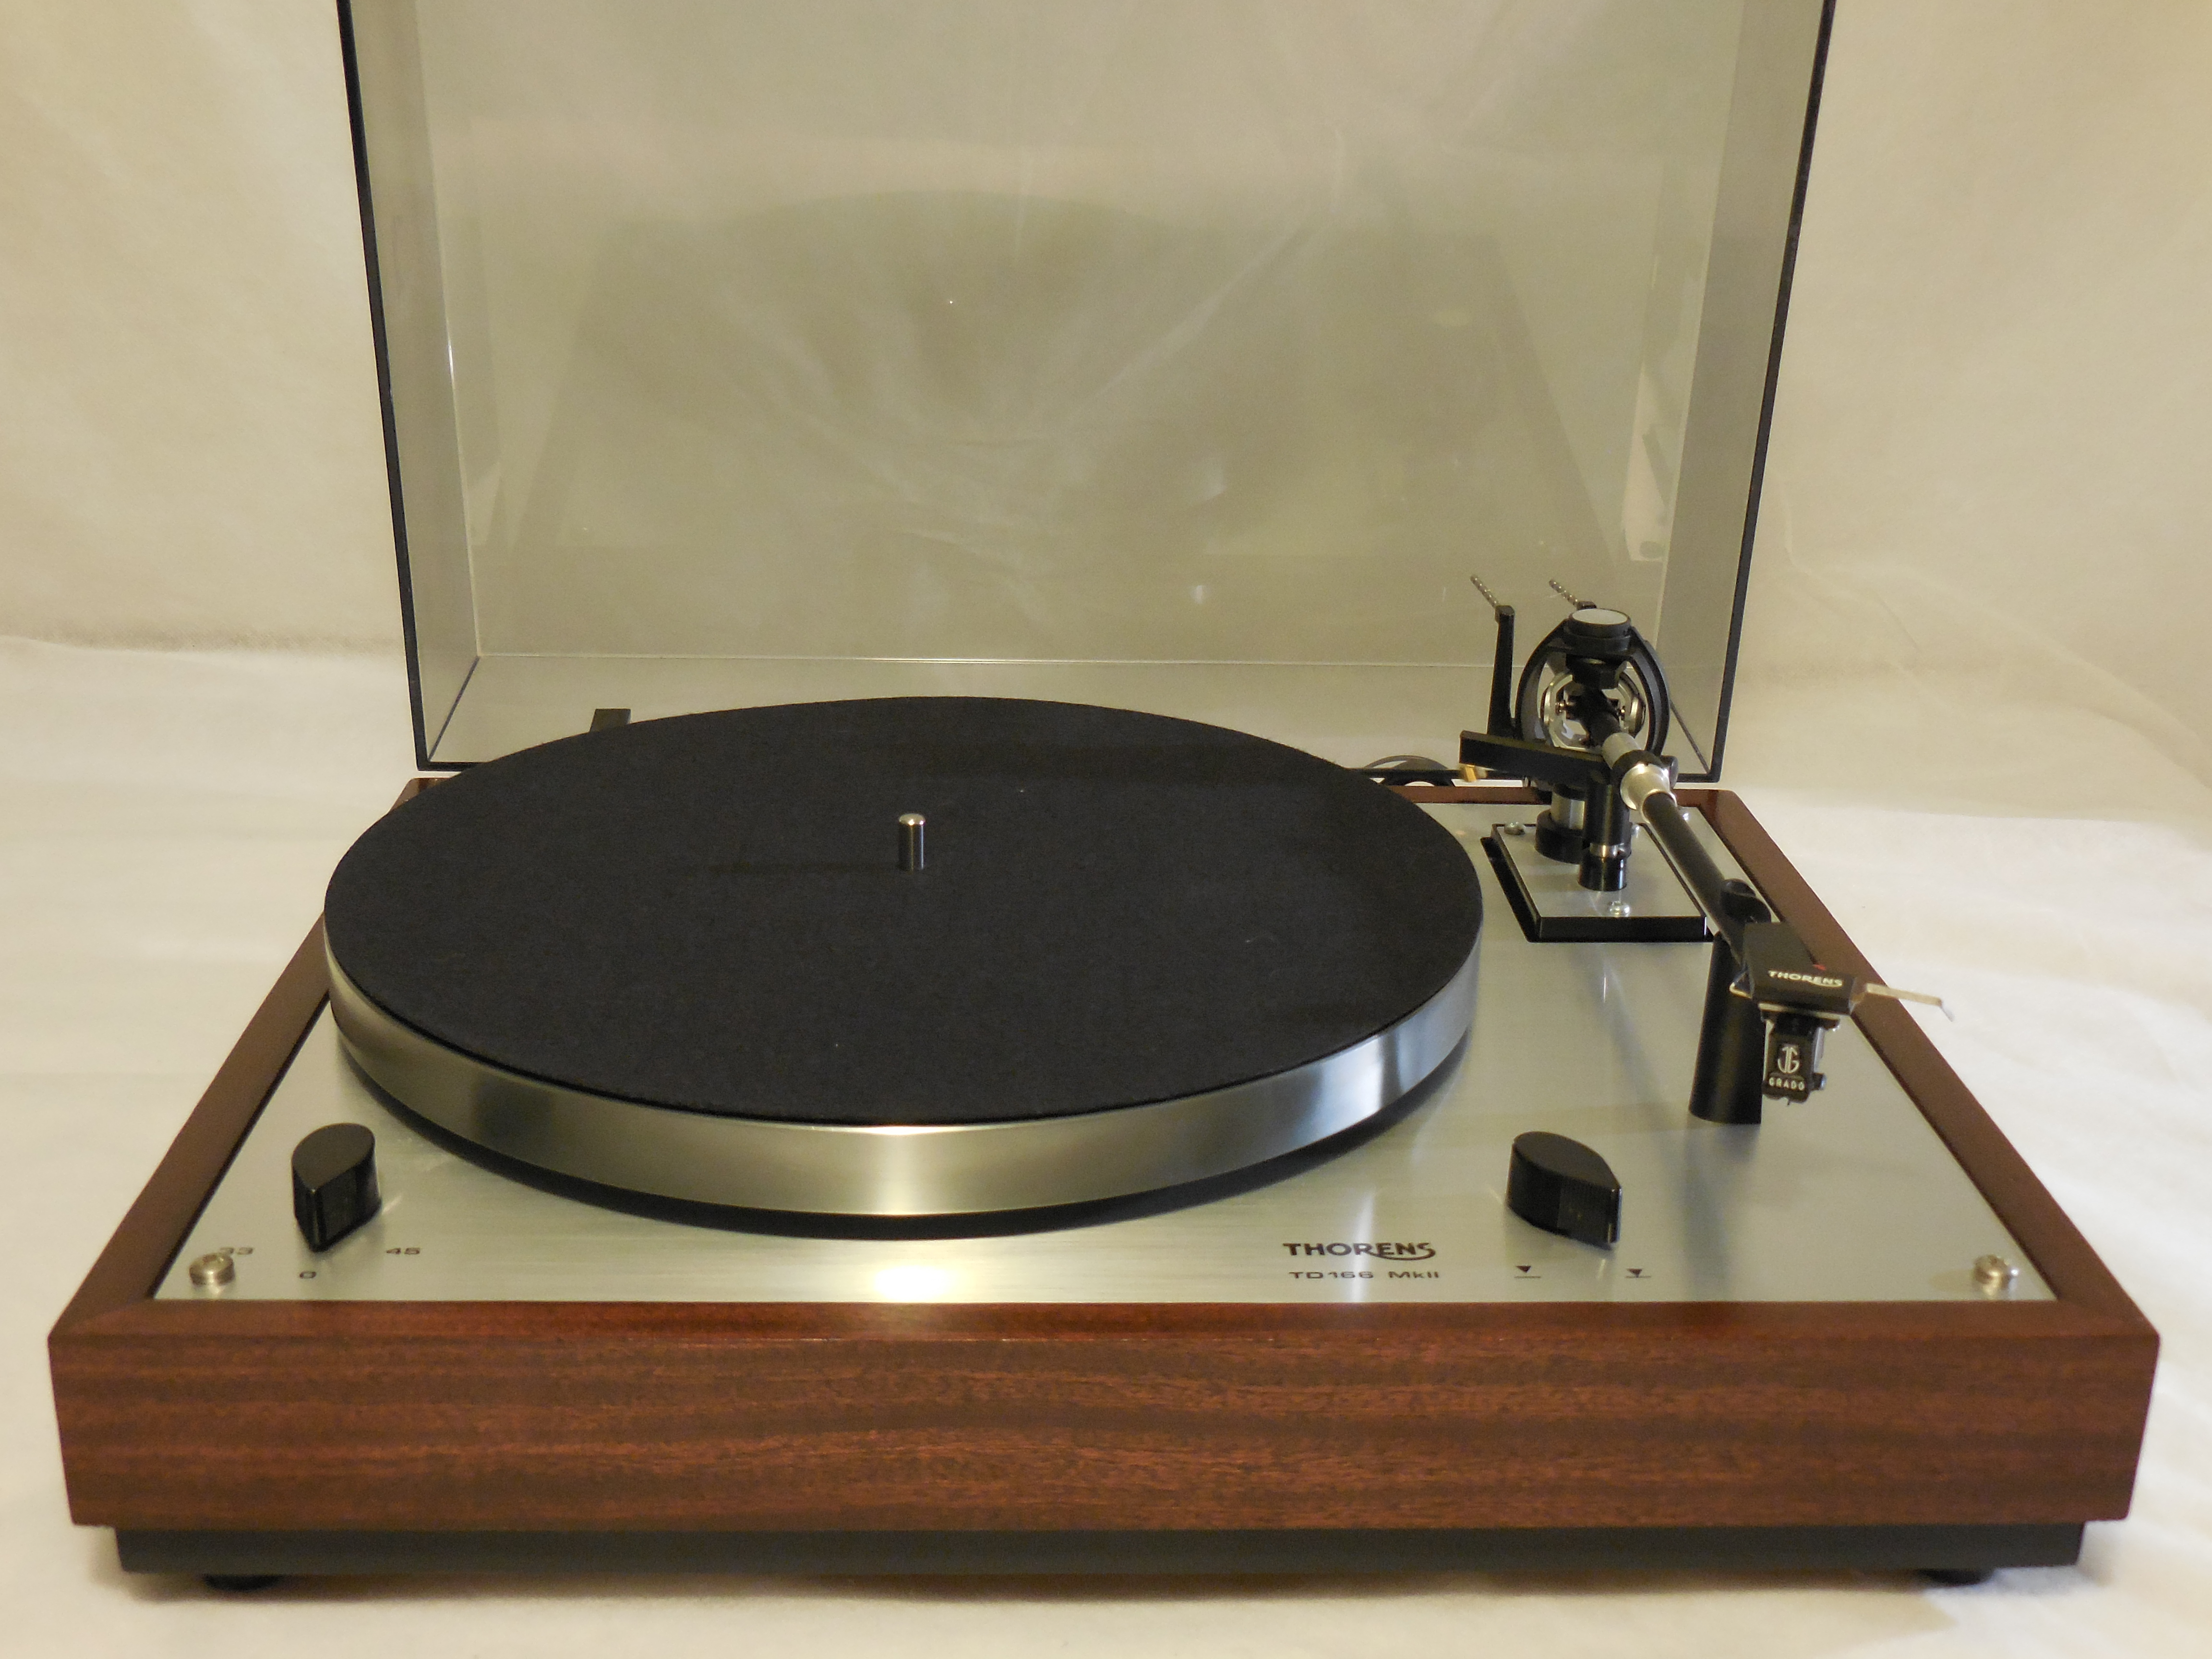 starter-package-thorens-td-166-mkii-turntable-includes-used